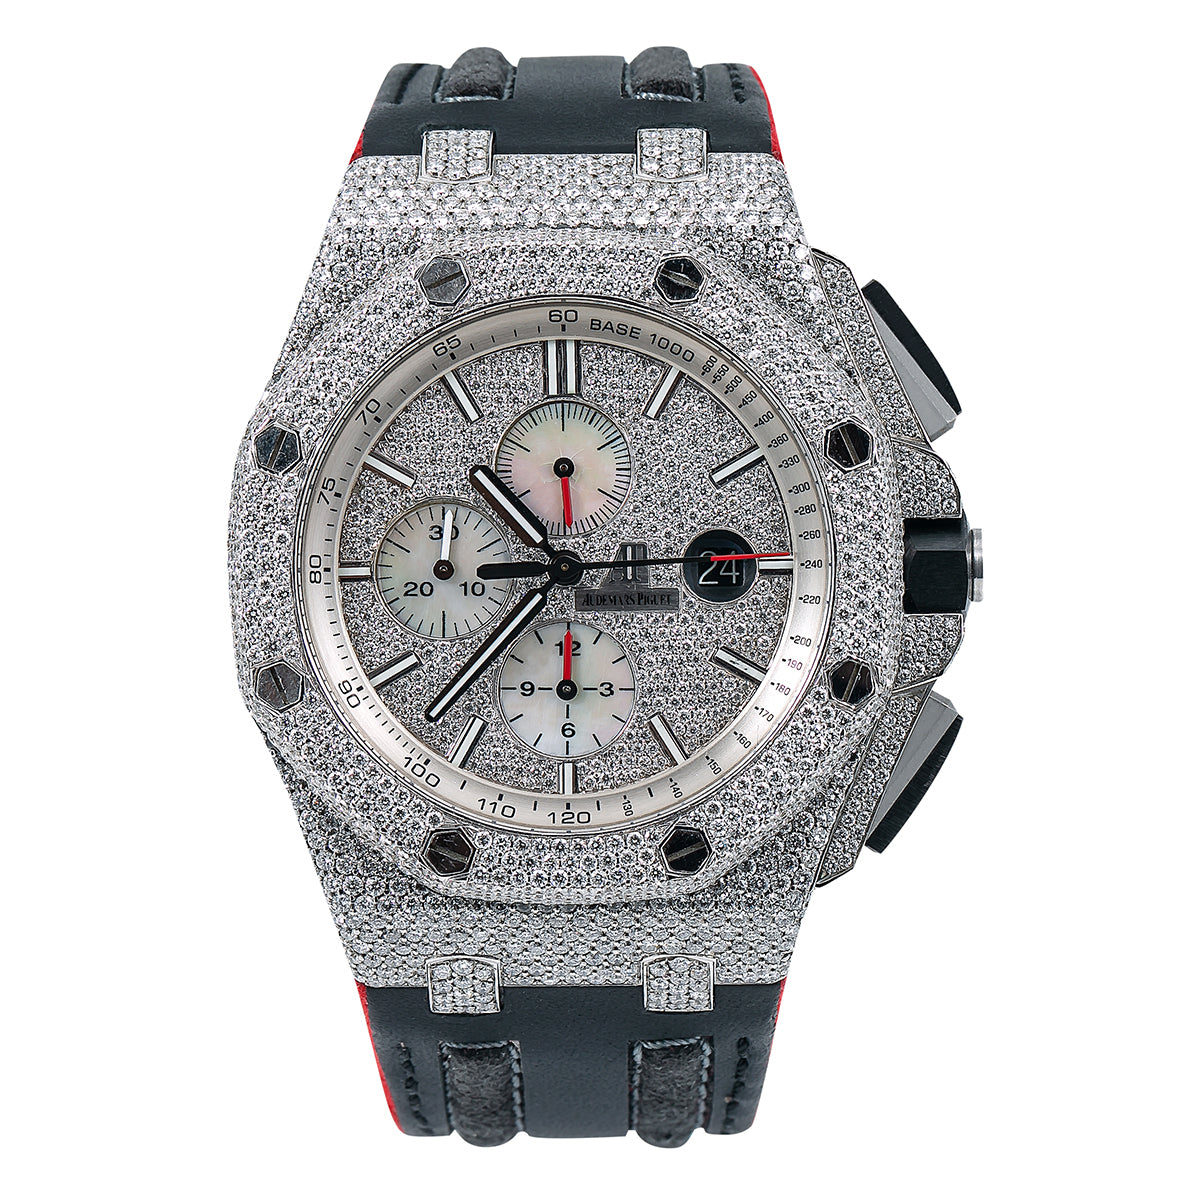 Audemars Piguet Royal Oak Offshore 26170ST Silver Diamond Dial With Leather Bracelet